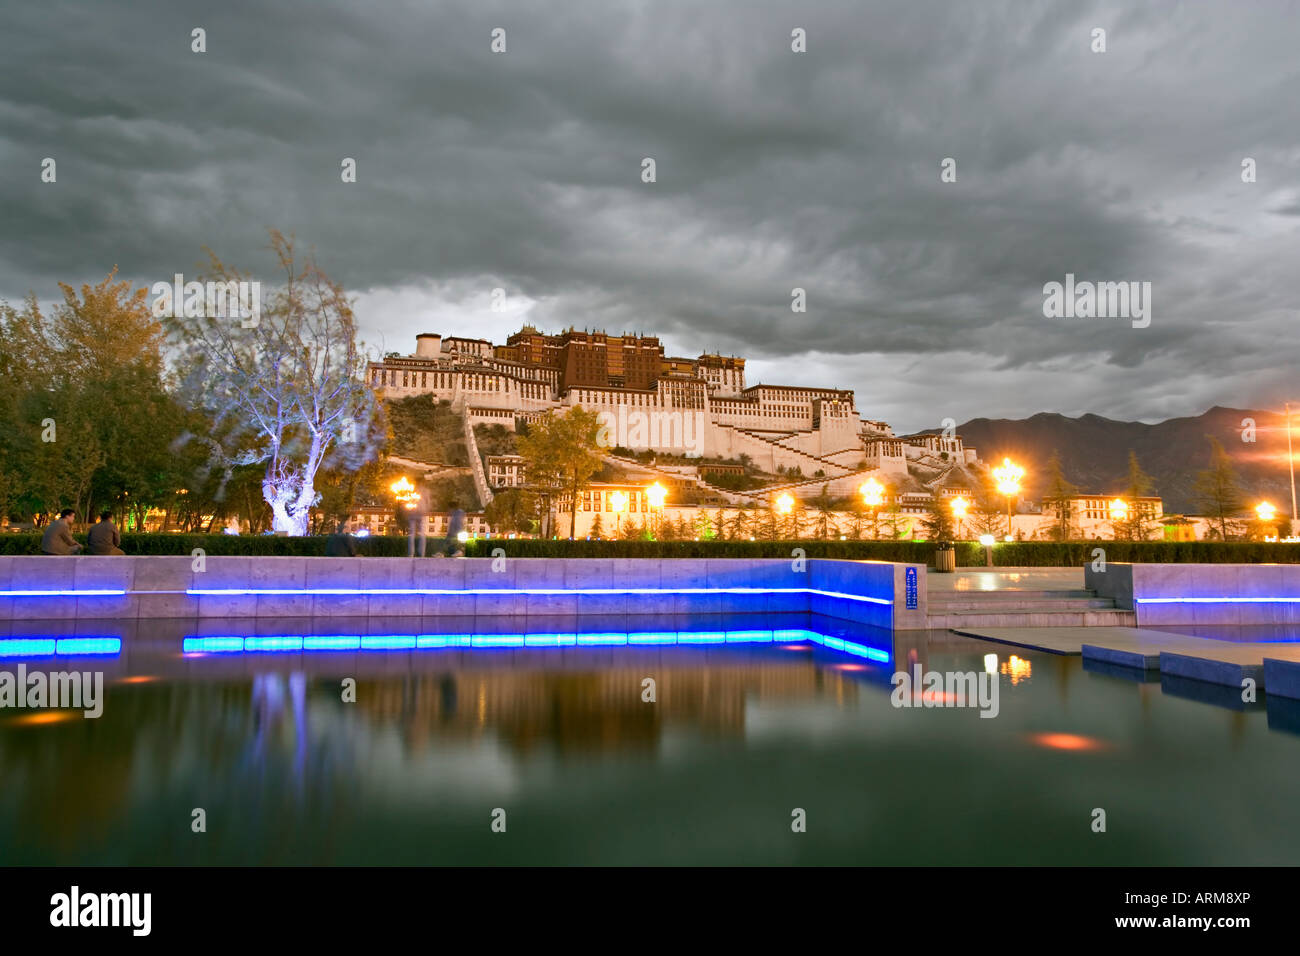 Water feature in front of the Potala Square lit up with neon blue lights in early evening, Lhasa, Tibet, China, - Stock Image